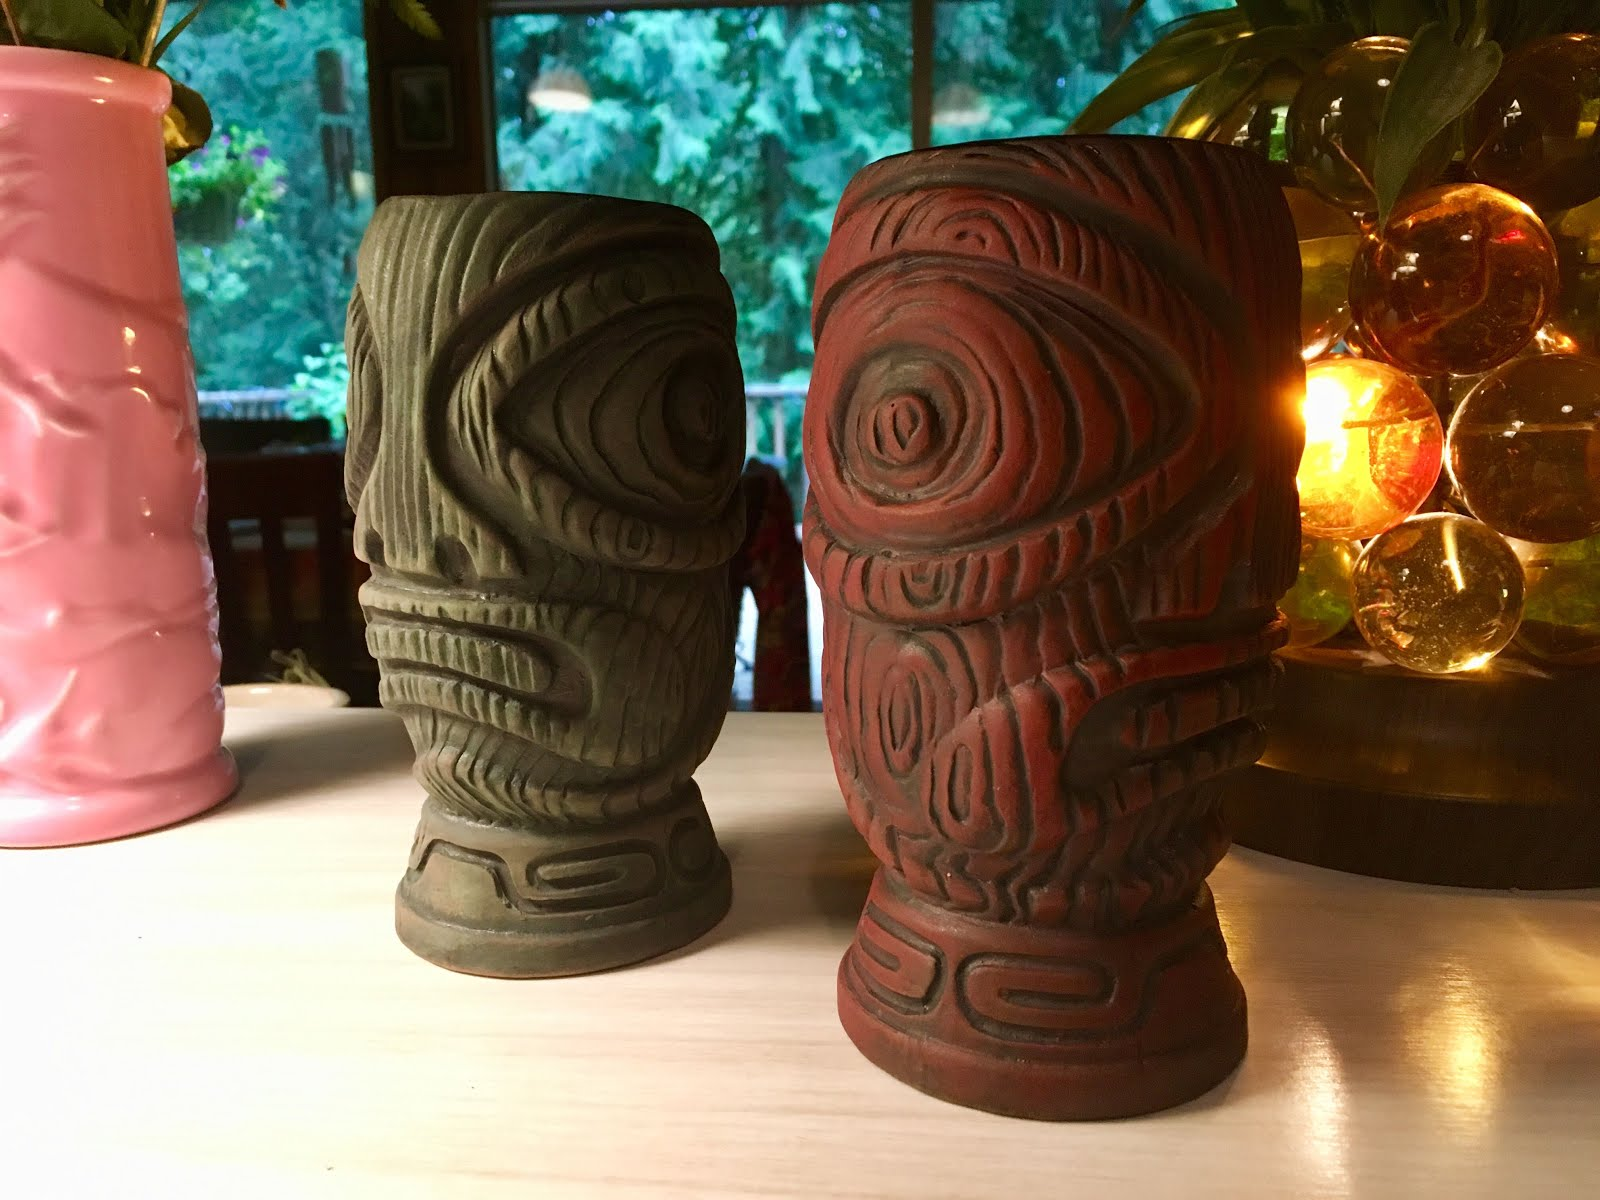 These mugs were made in collaboration with Michael Scibba/Jungle Modern Ceramics